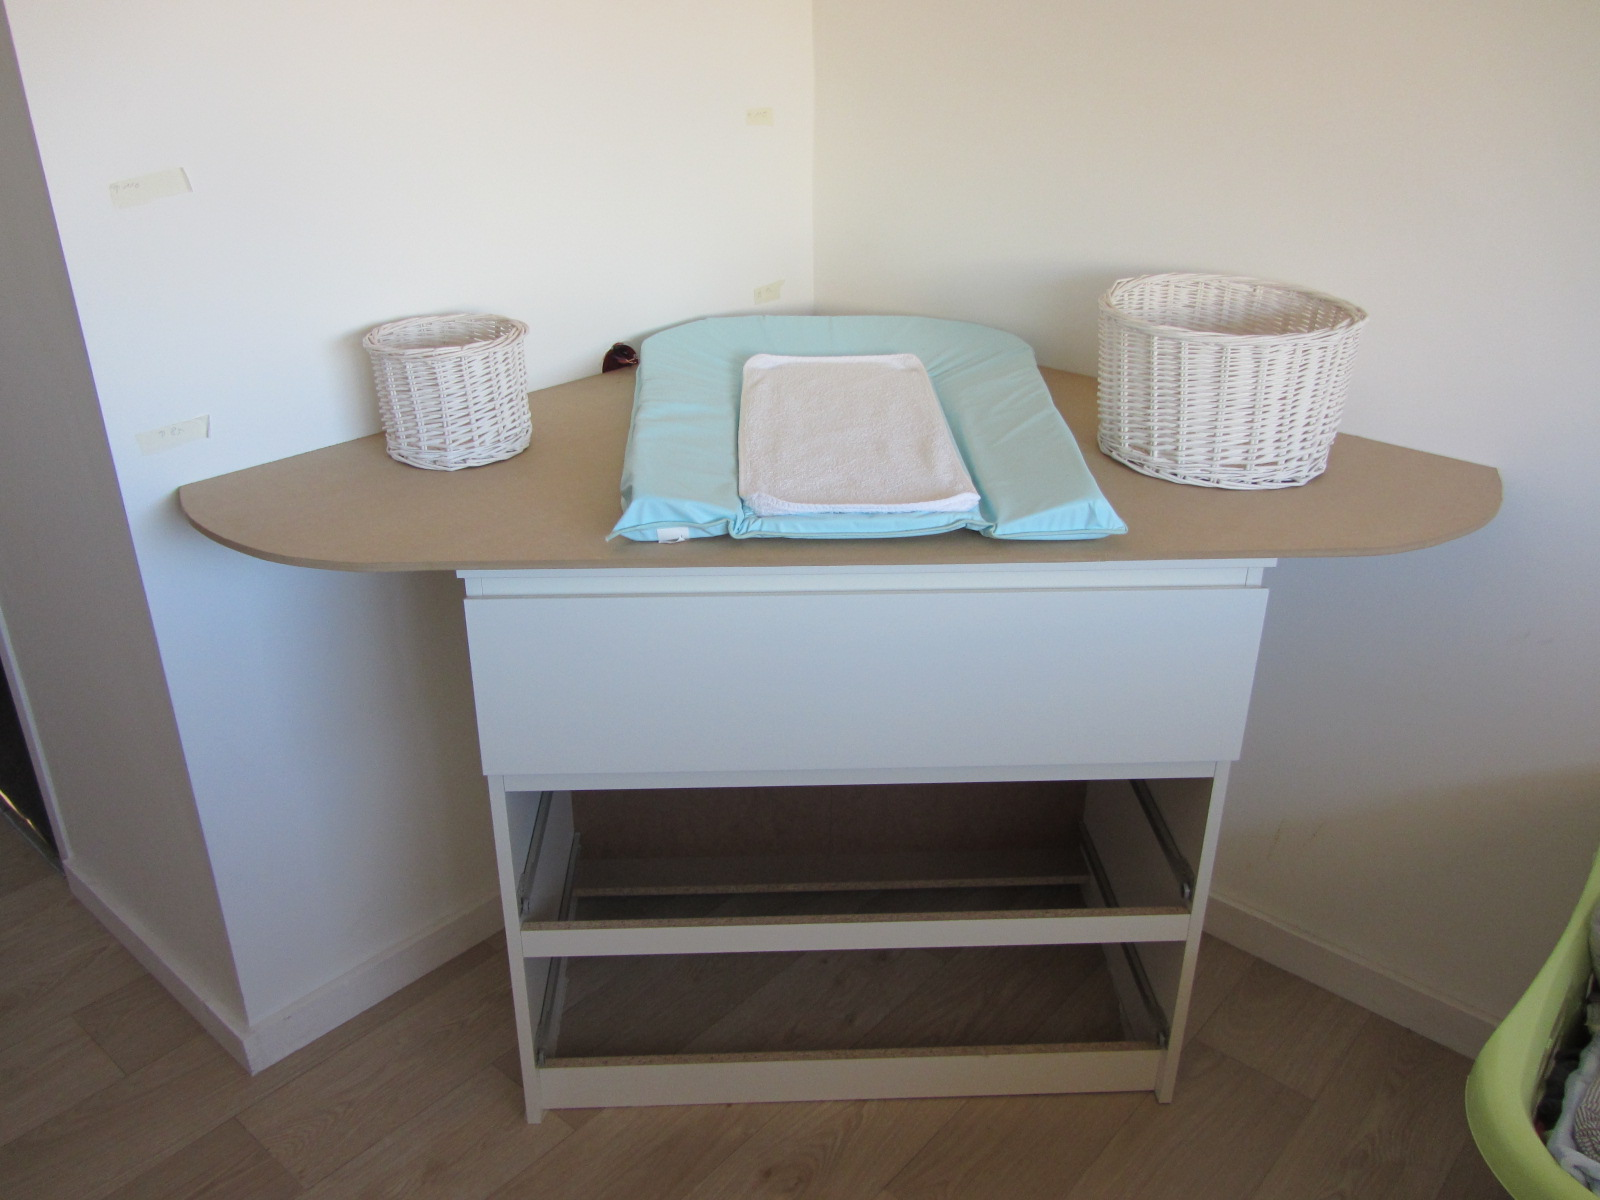 Customiser Commode Malm Emejing Table A Langer Commode Malm Photos Awesome